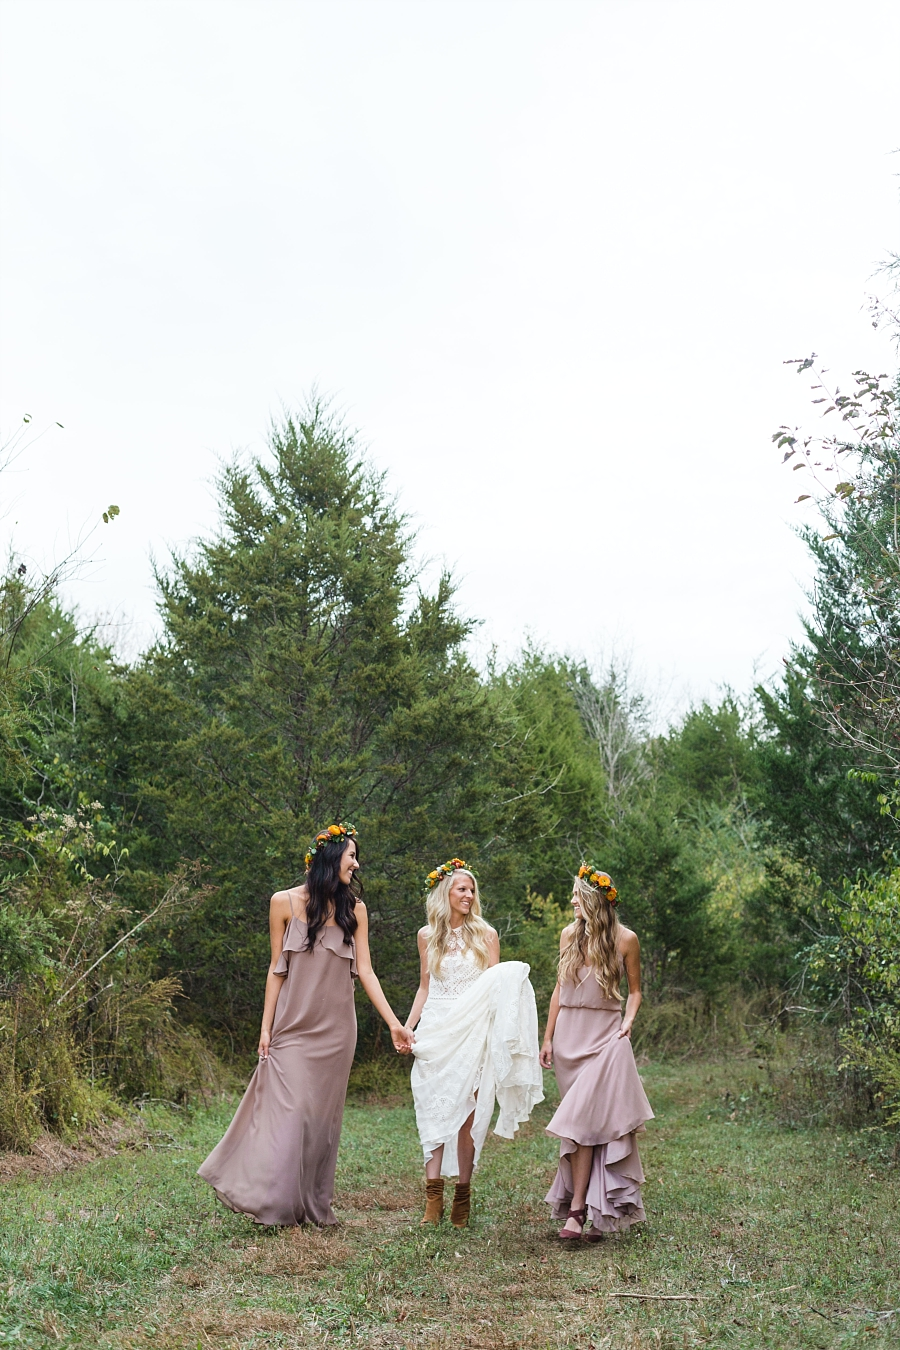 Stacy-Anderson-Photography-Cedarwood-Weddings-Nashville-Destination-Wedding-Photographer_0065.jpg